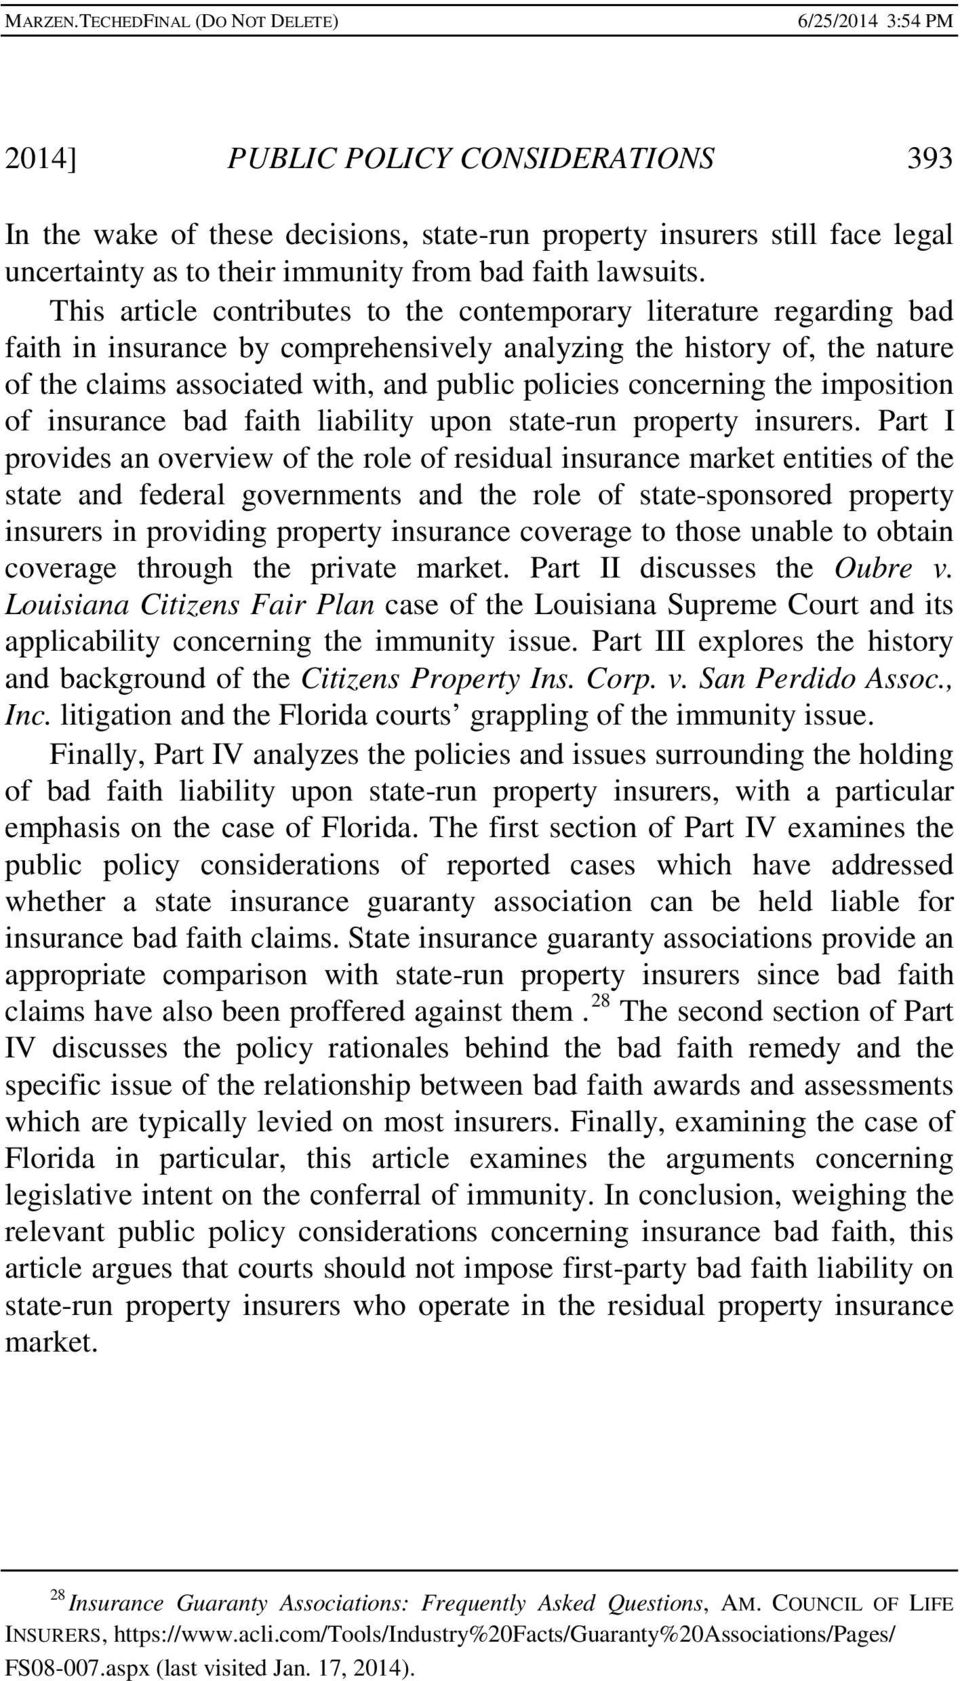 concerning the imposition of insurance bad faith liability upon state-run property insurers.